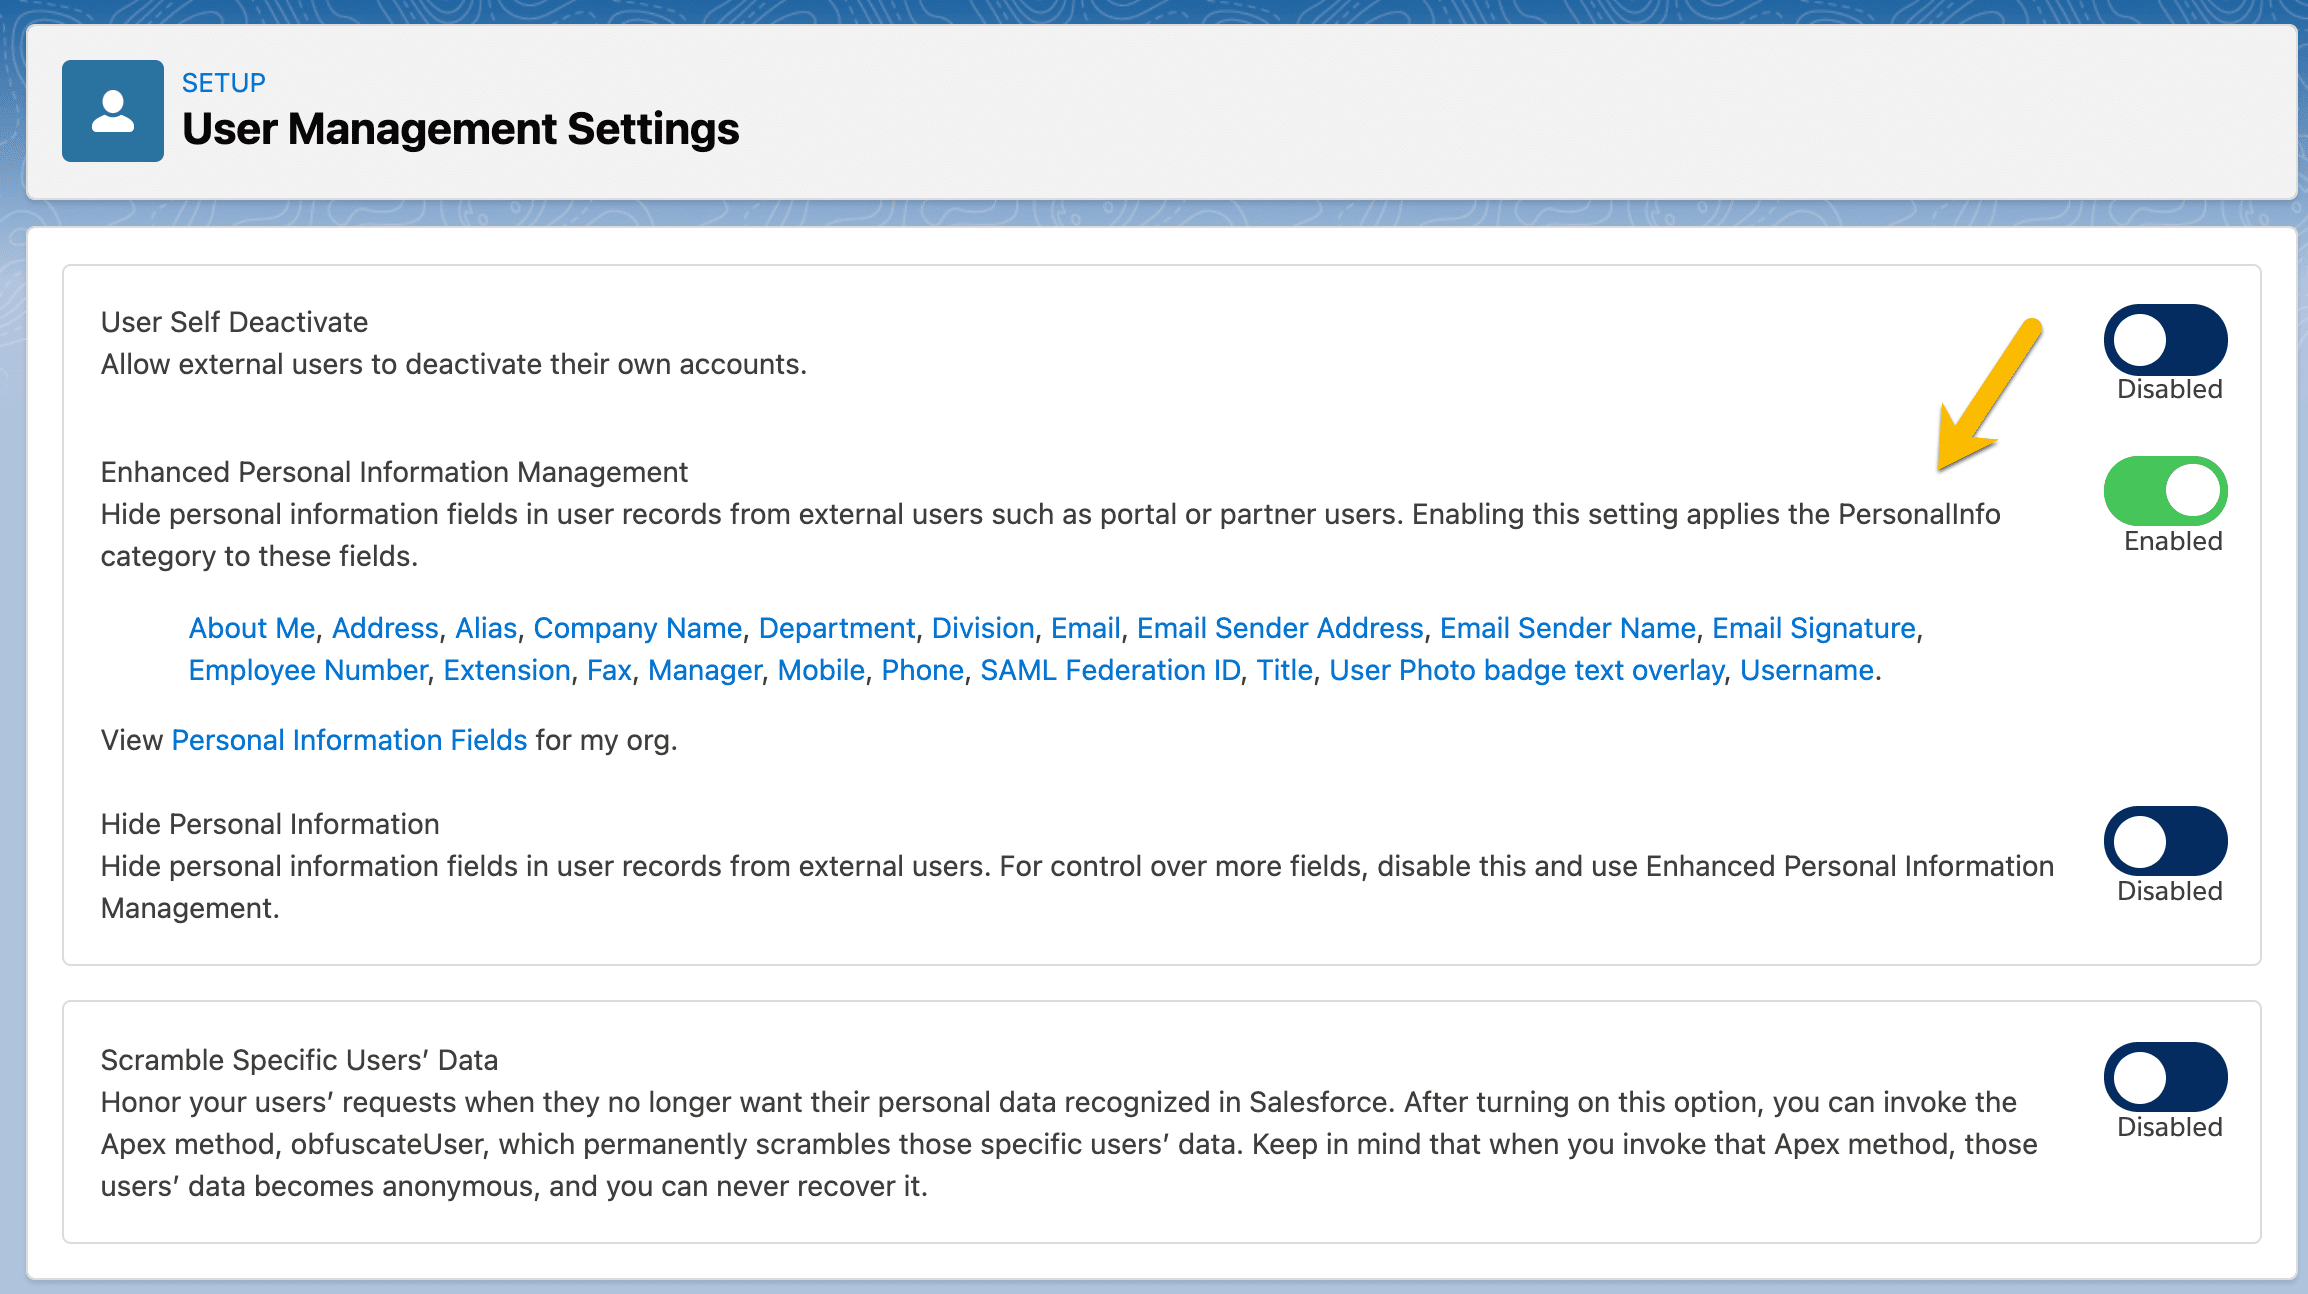 Enhanced Personal Information Management section of the User Management Settings page.